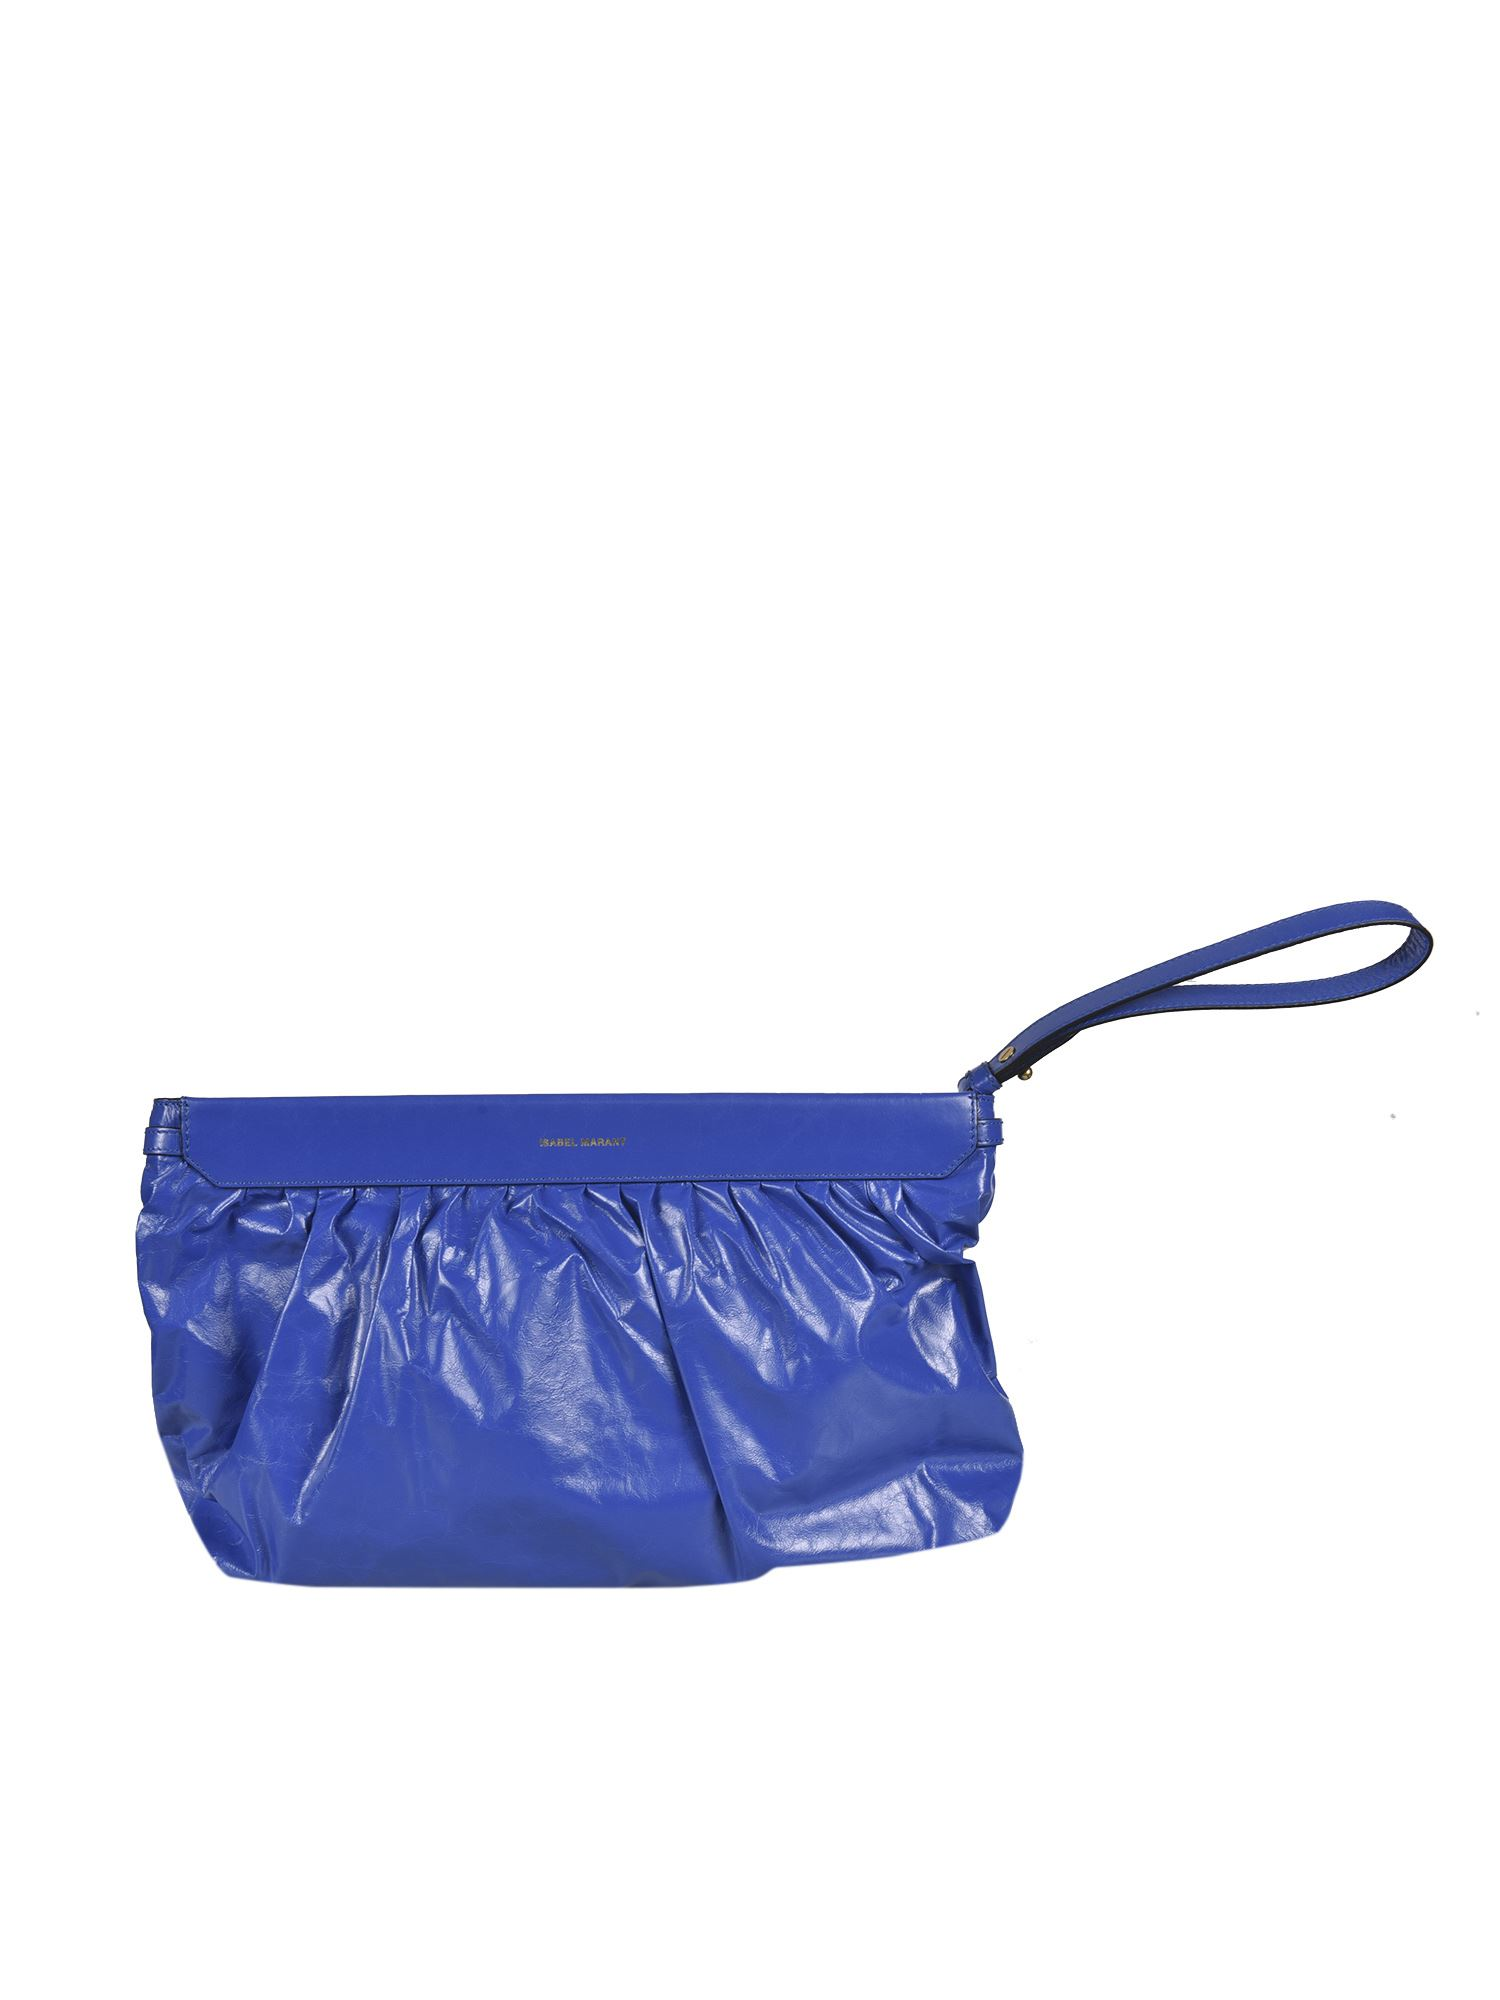 Isabel Marant ISABEL MARANT LUZ CLUTCH BAG IN BLUE